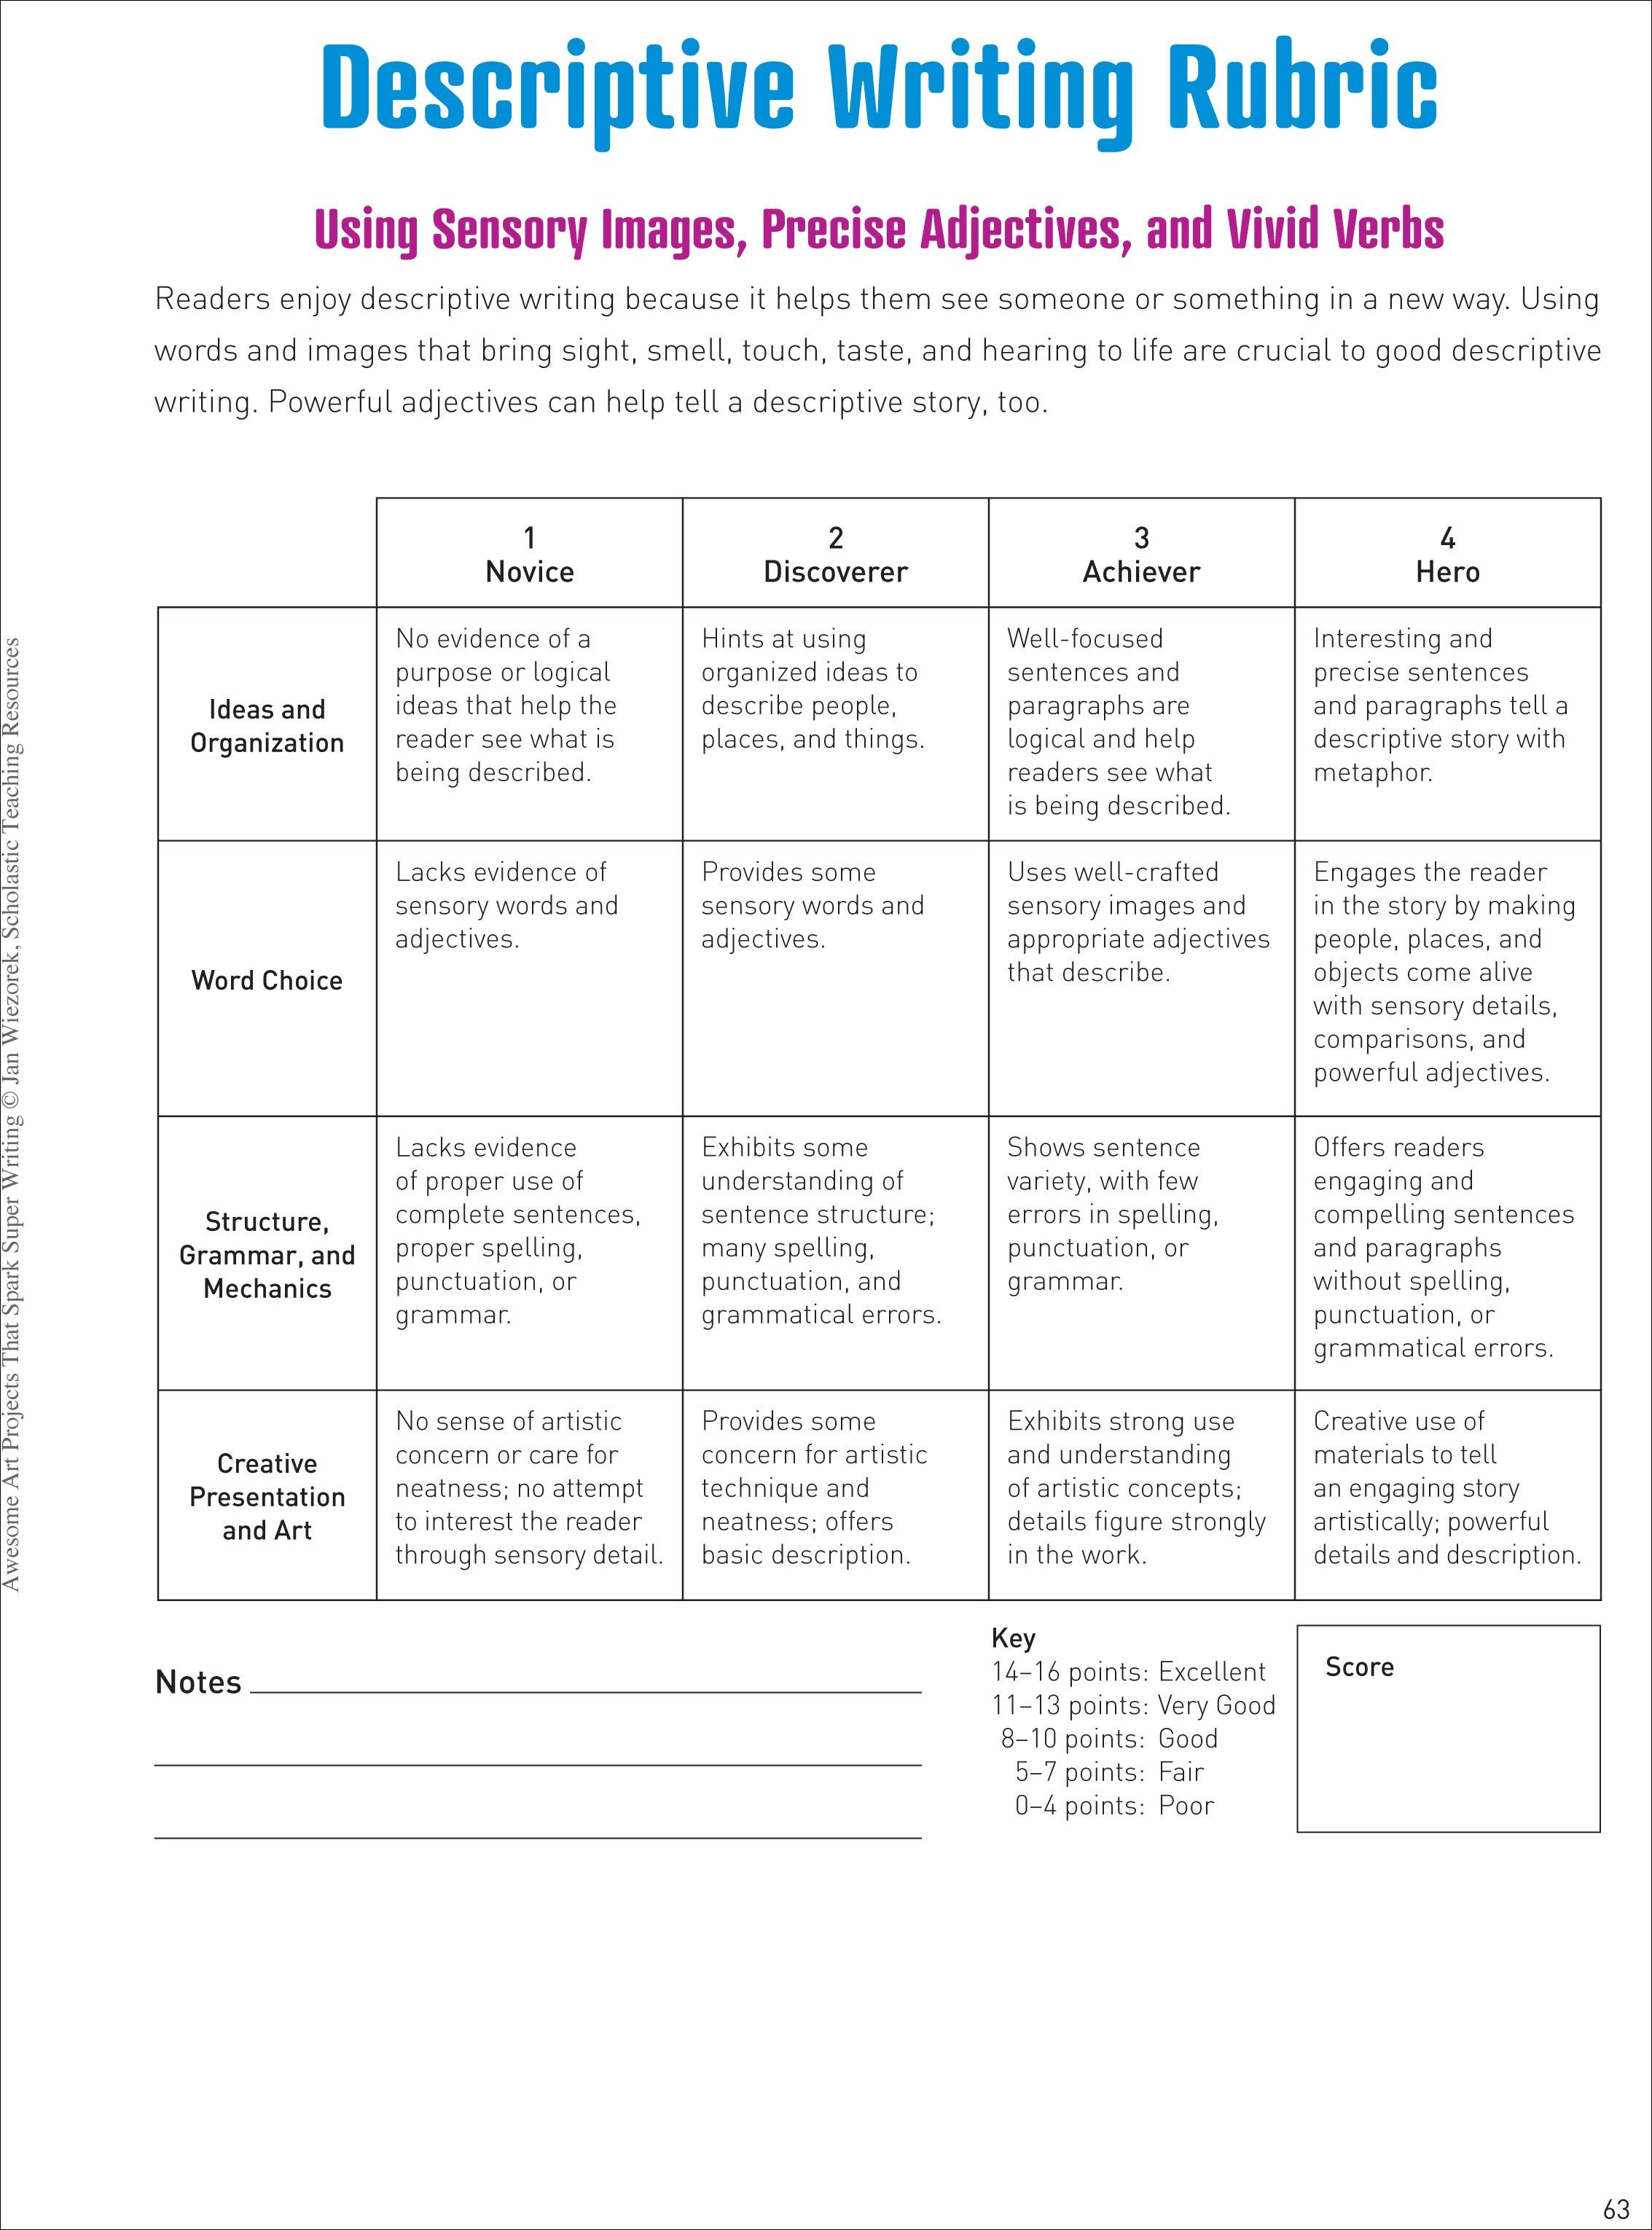 grade 5 descriptive writing rubric google search academic grade 5 descriptive writing rubric google search